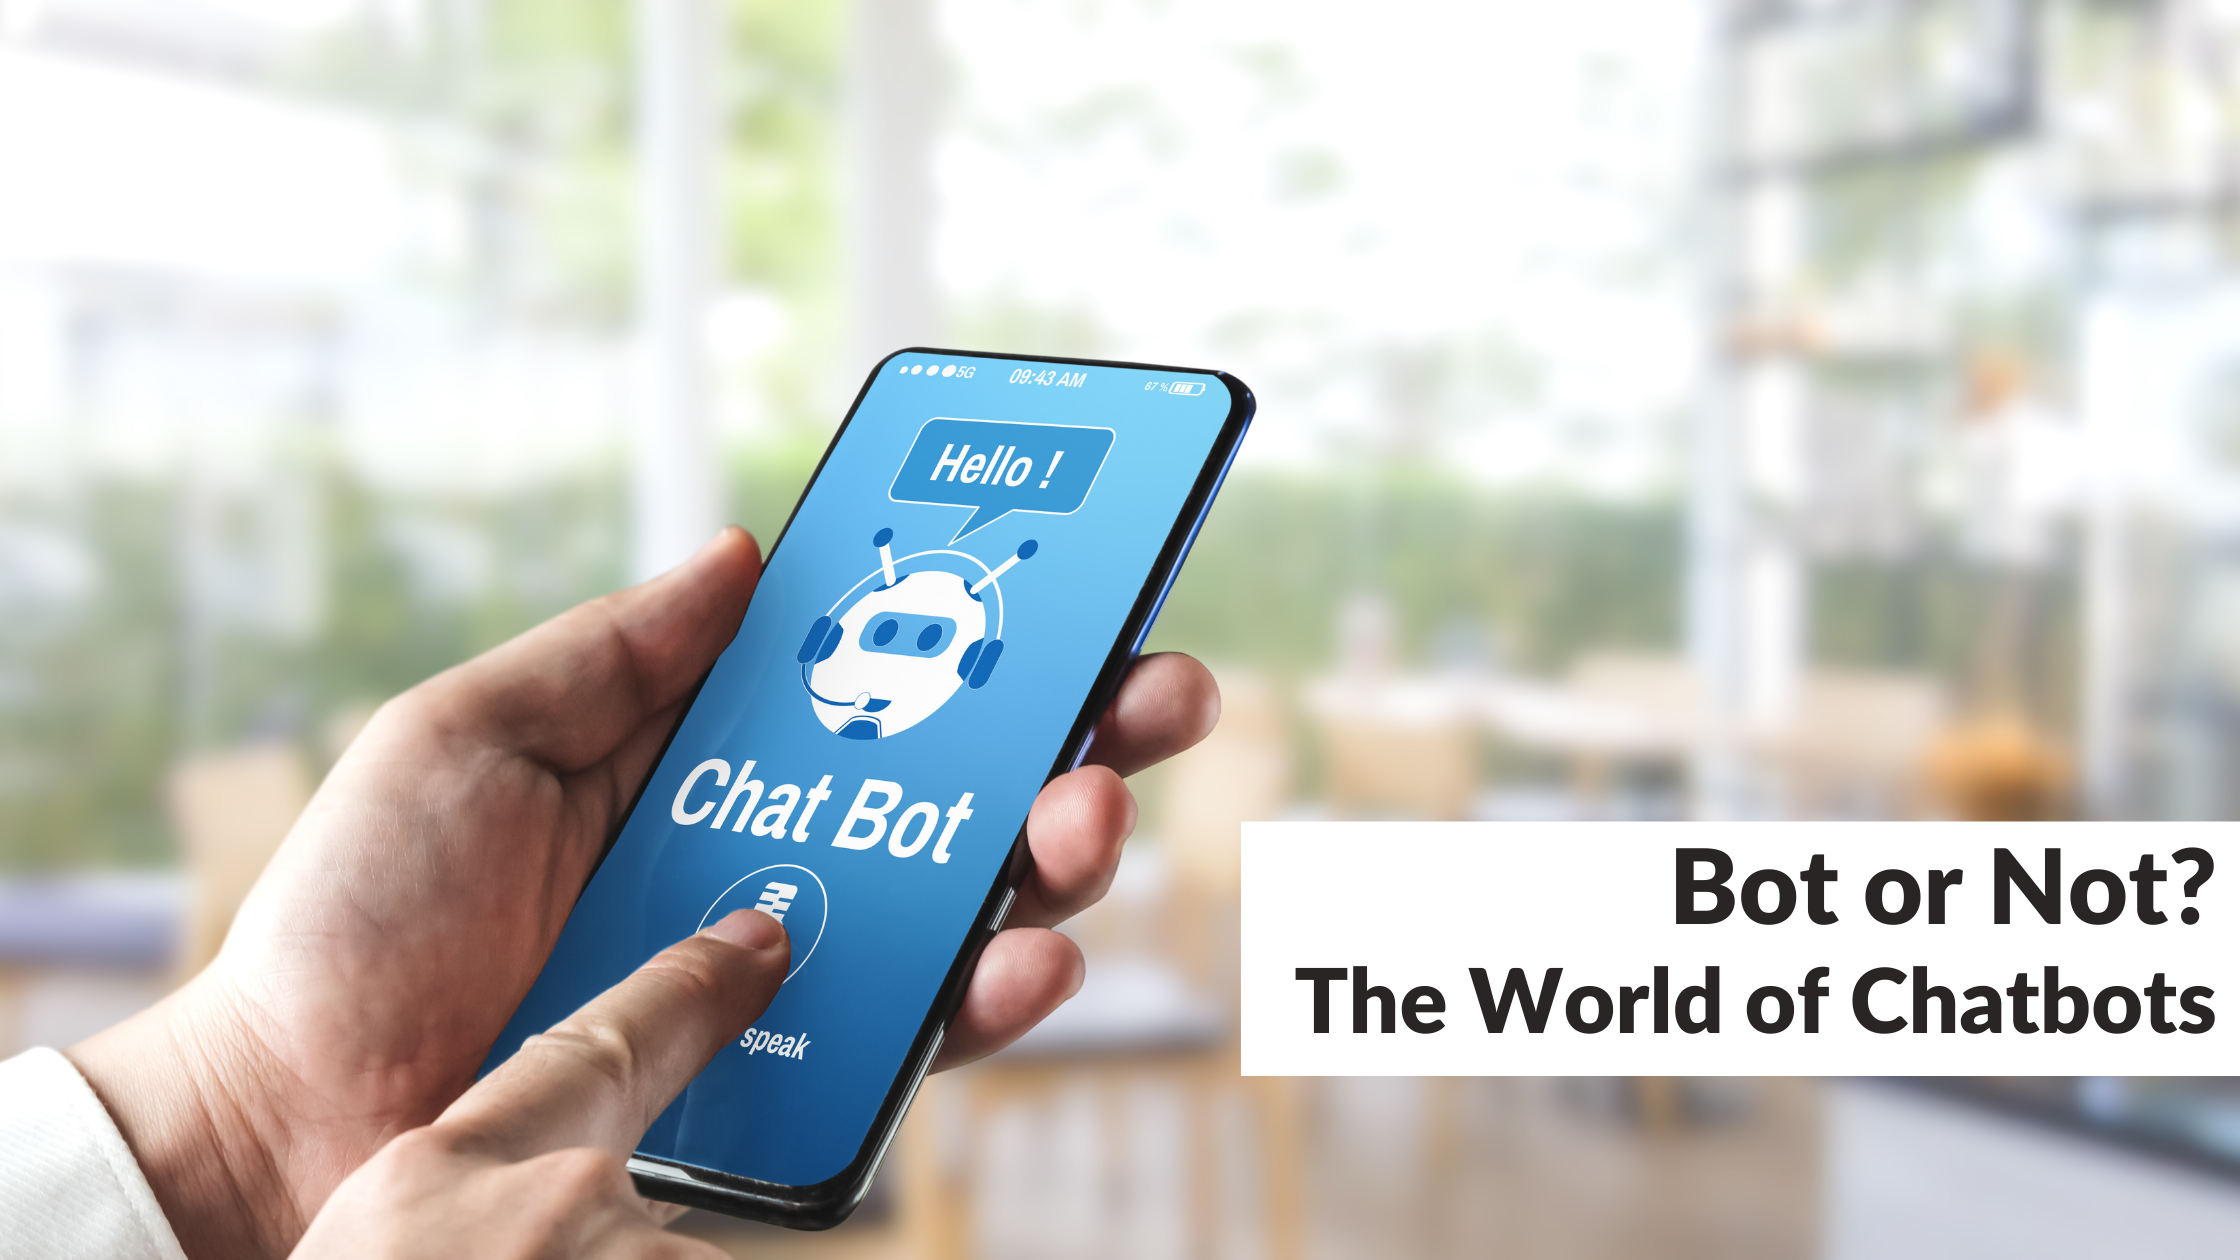 Bot or Not? The World of Chatbots